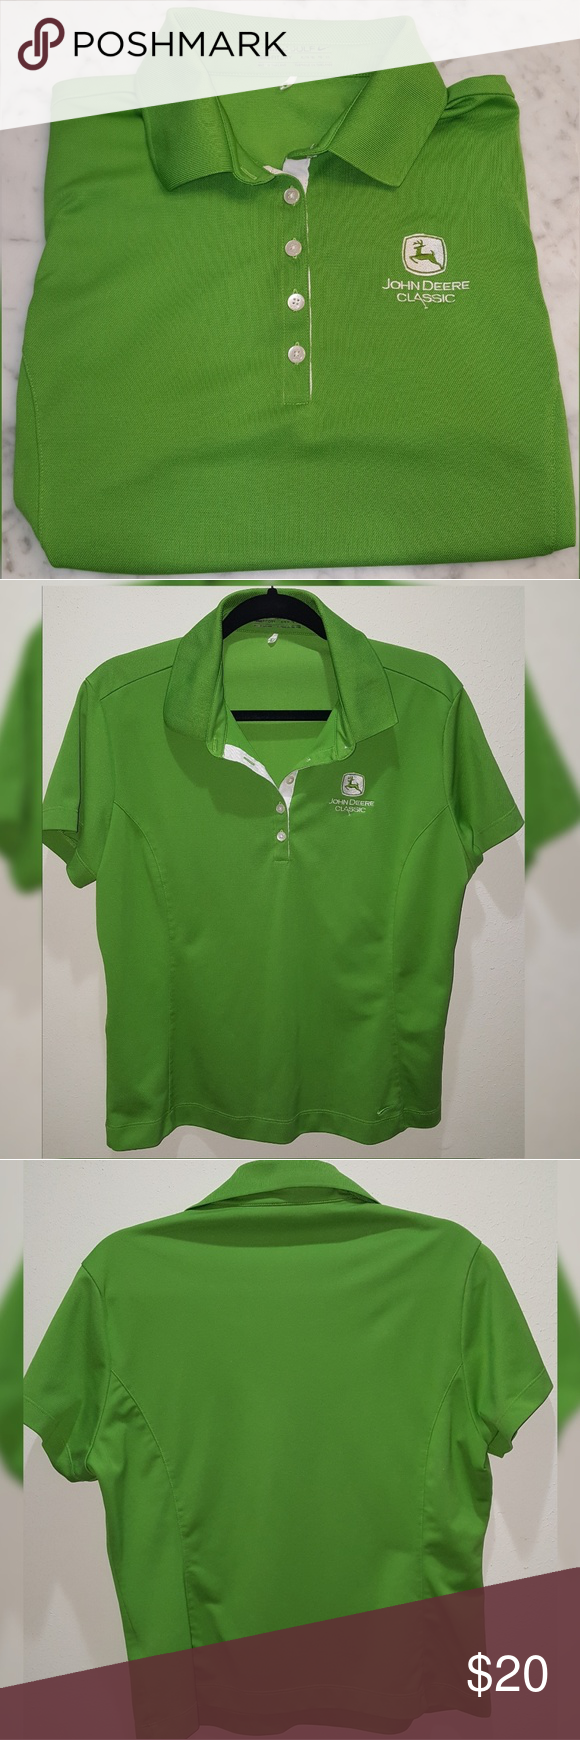 816959f4 John Deere Classic Nike Dry Fit XLarge Polo shirt John Deere Classic Nike  Dry Fit XL Polo shirt X-Large (16/18) This shirt is fitted. Good used  condition.